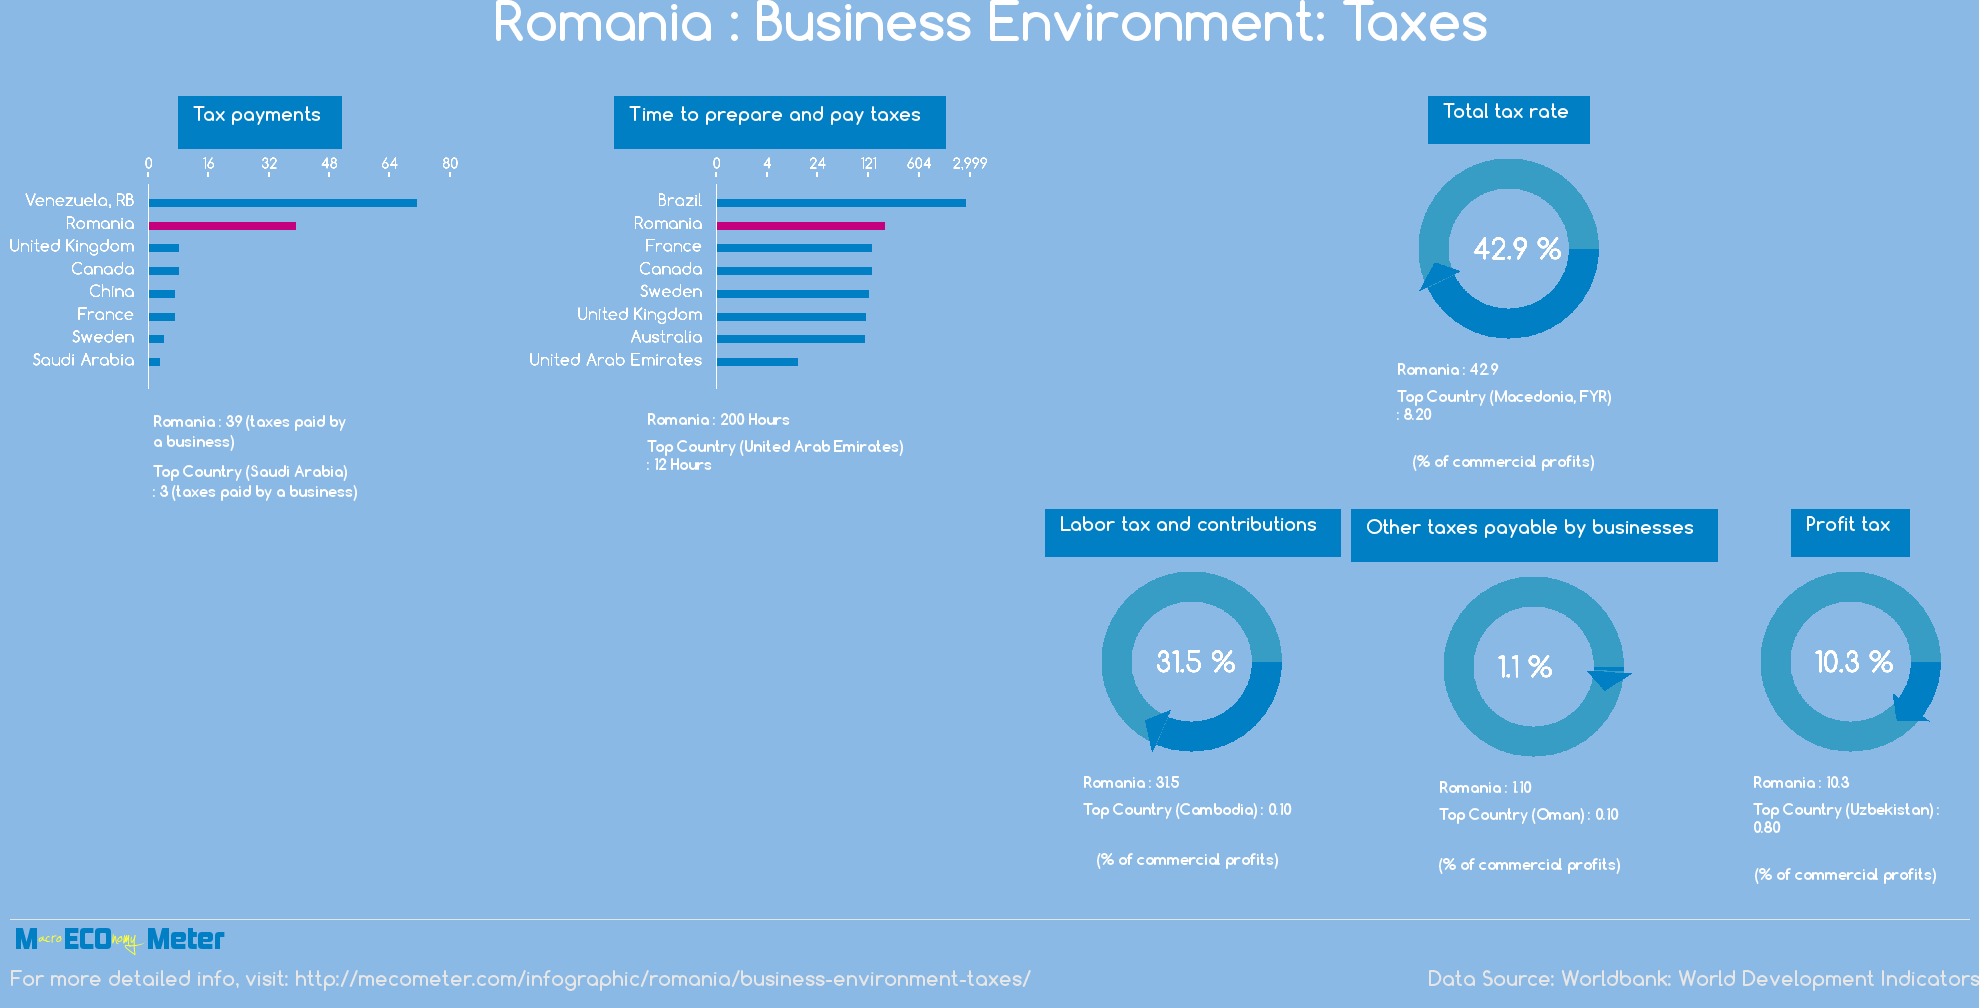 Romania : Business Environment: Taxes